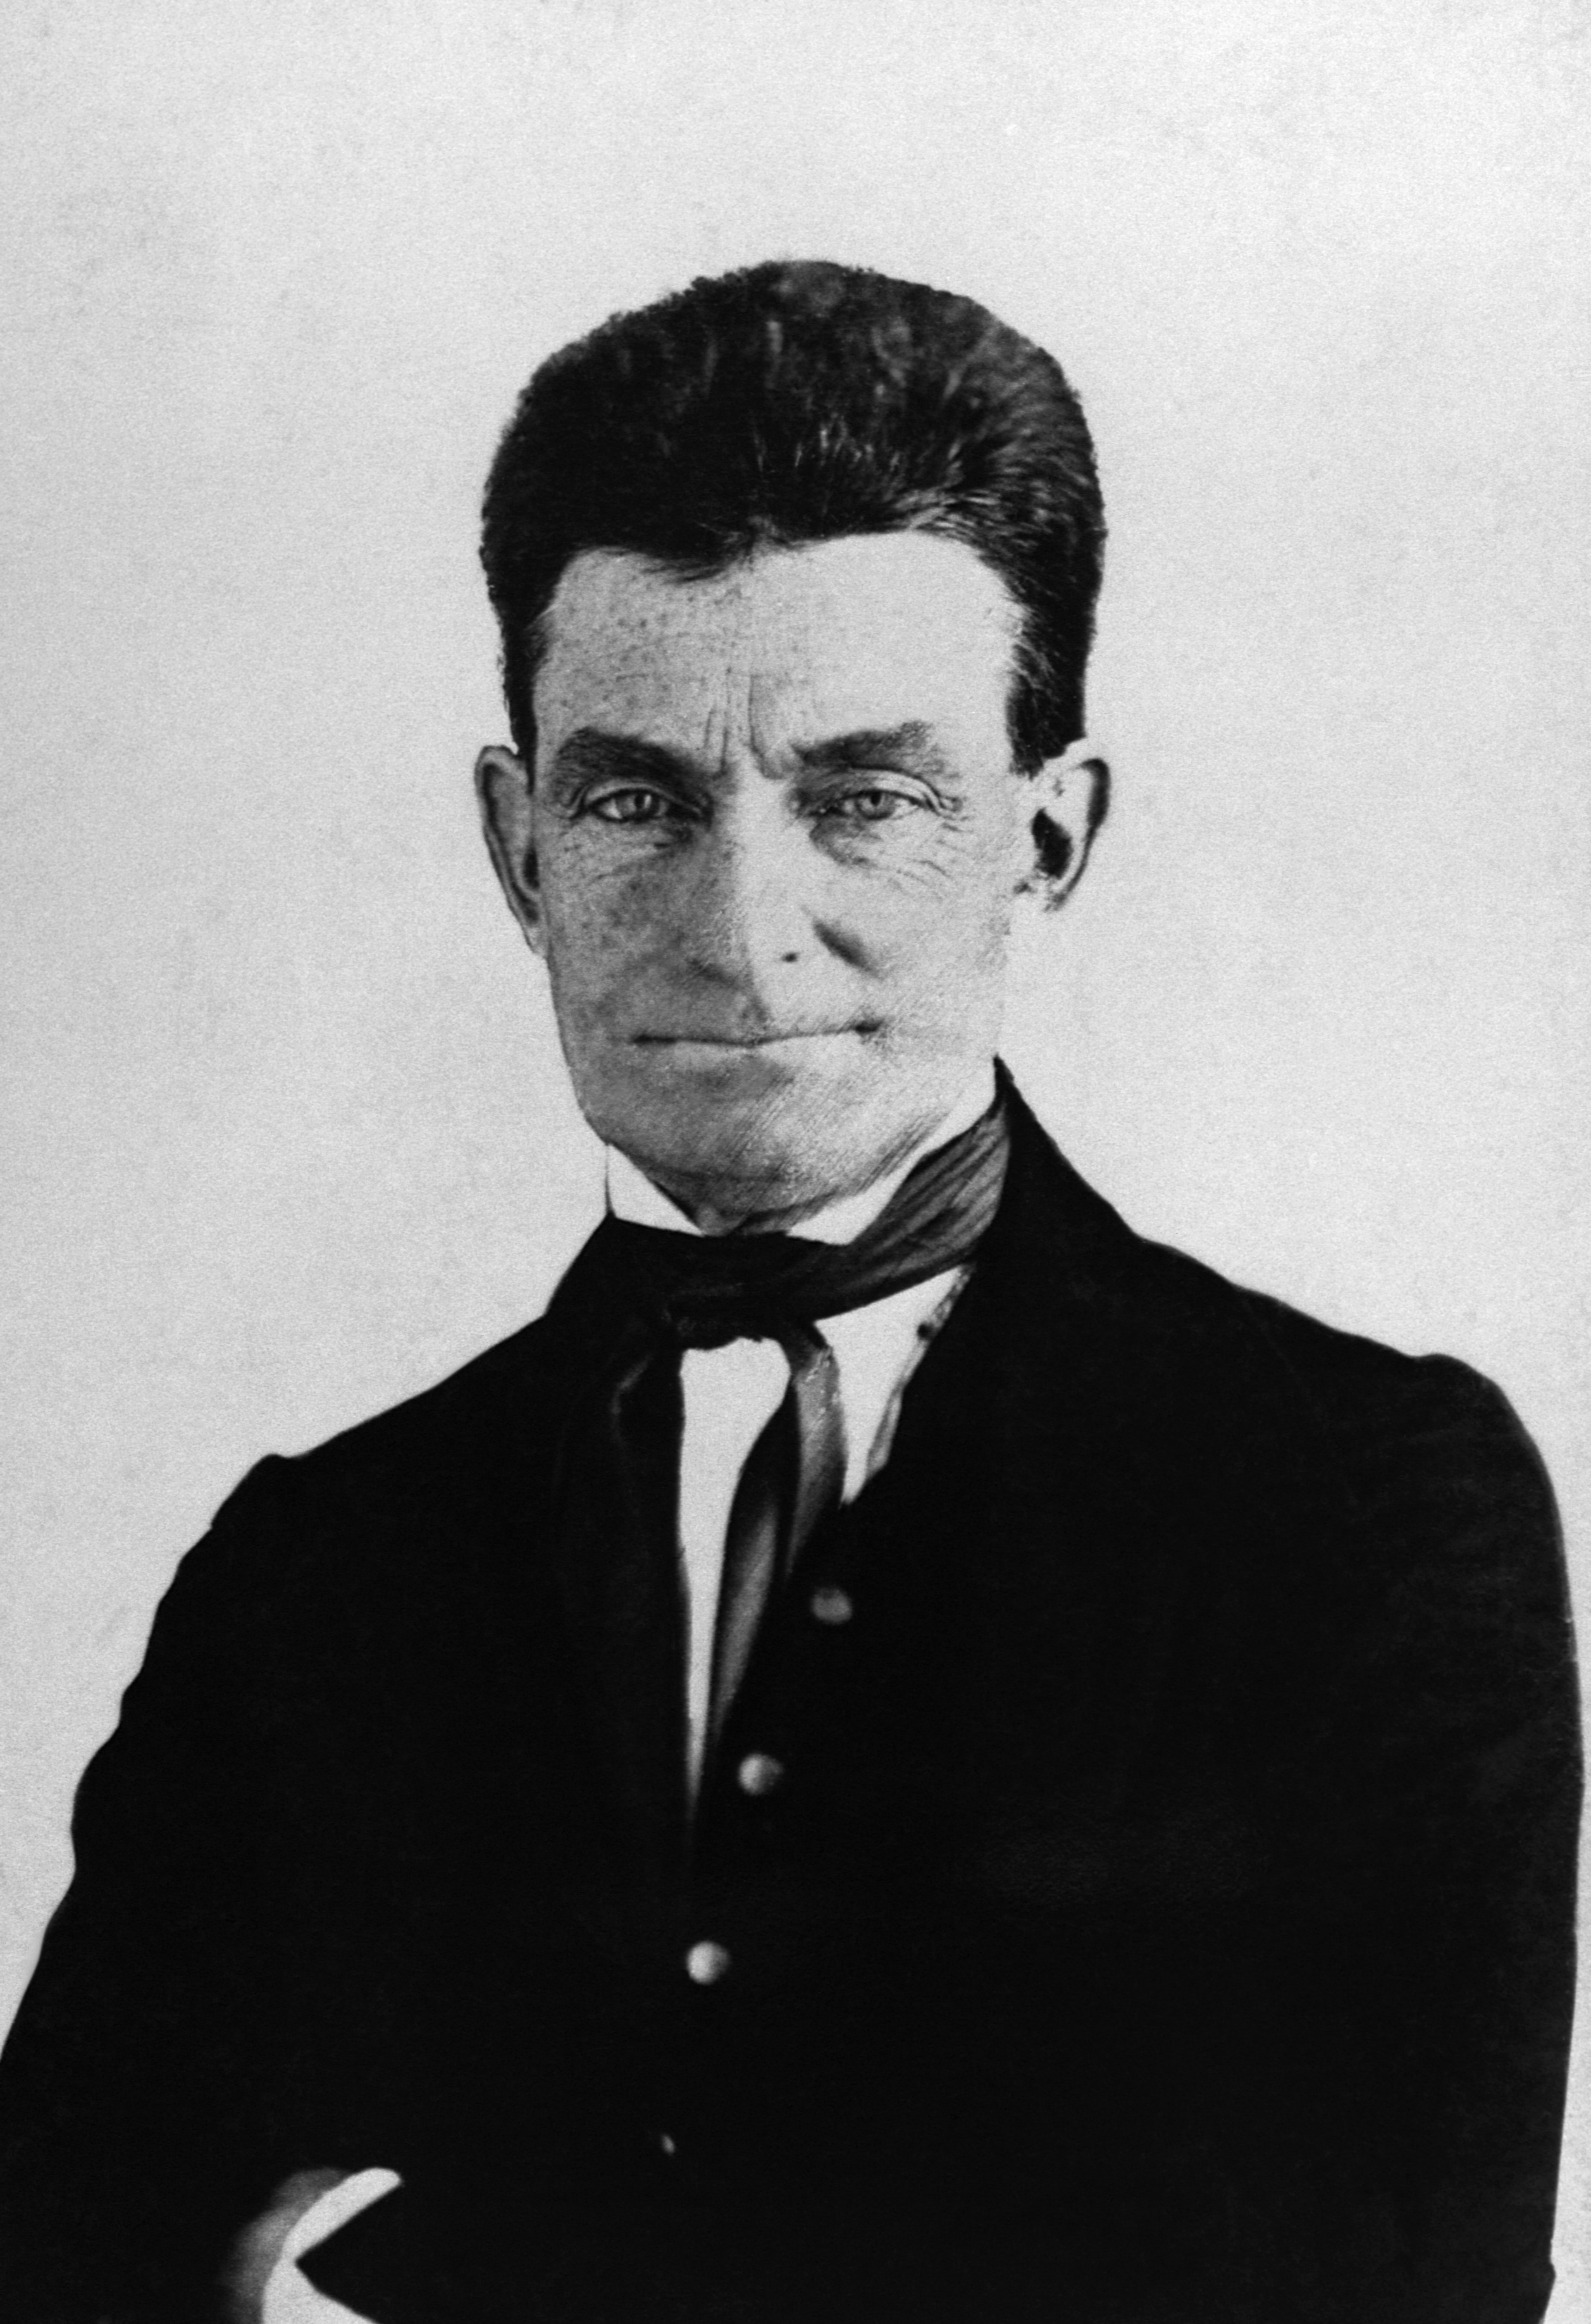 key contributors to the underground railroad lists john brown